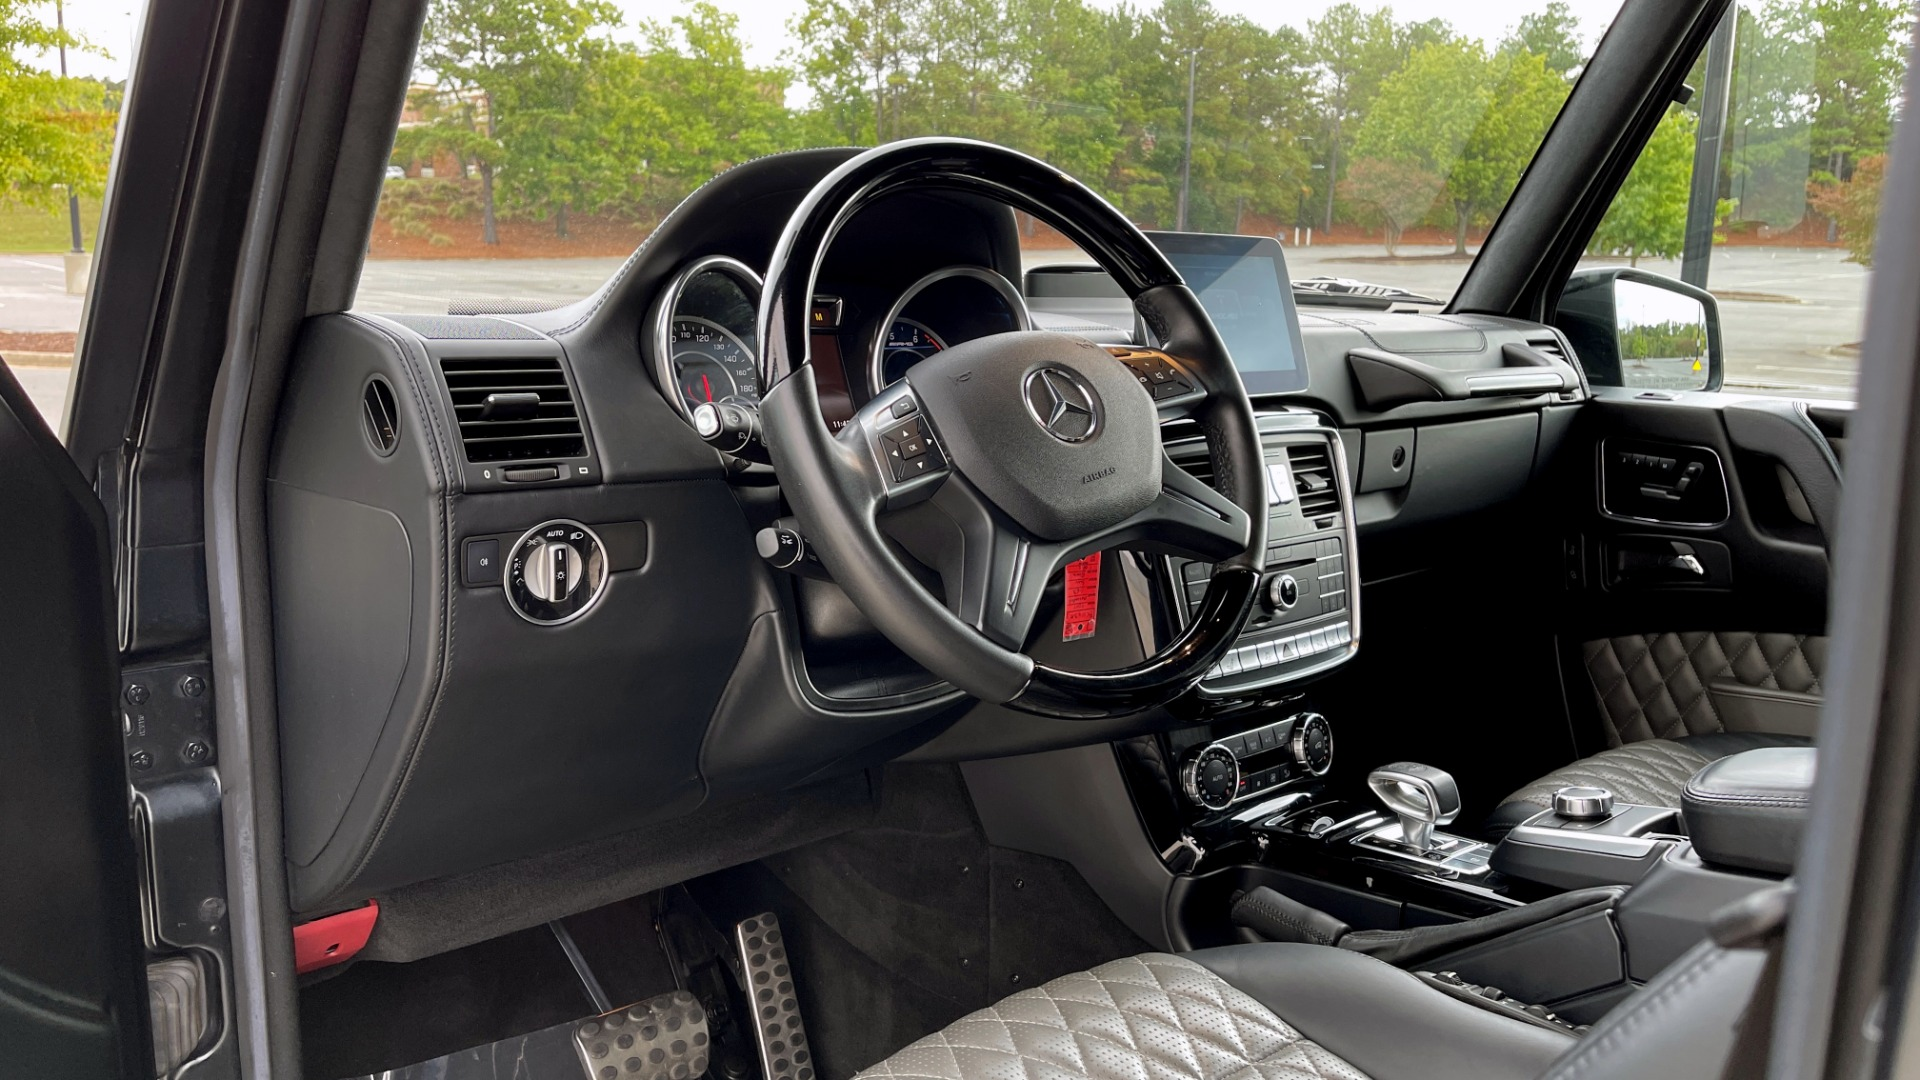 Used 2017 Mercedes-Benz G-CLASS AMG G 63 / DESIGNO PKG / NAV / SUNROOF / H/K SND / REARVIEW for sale $124,999 at Formula Imports in Charlotte NC 28227 29